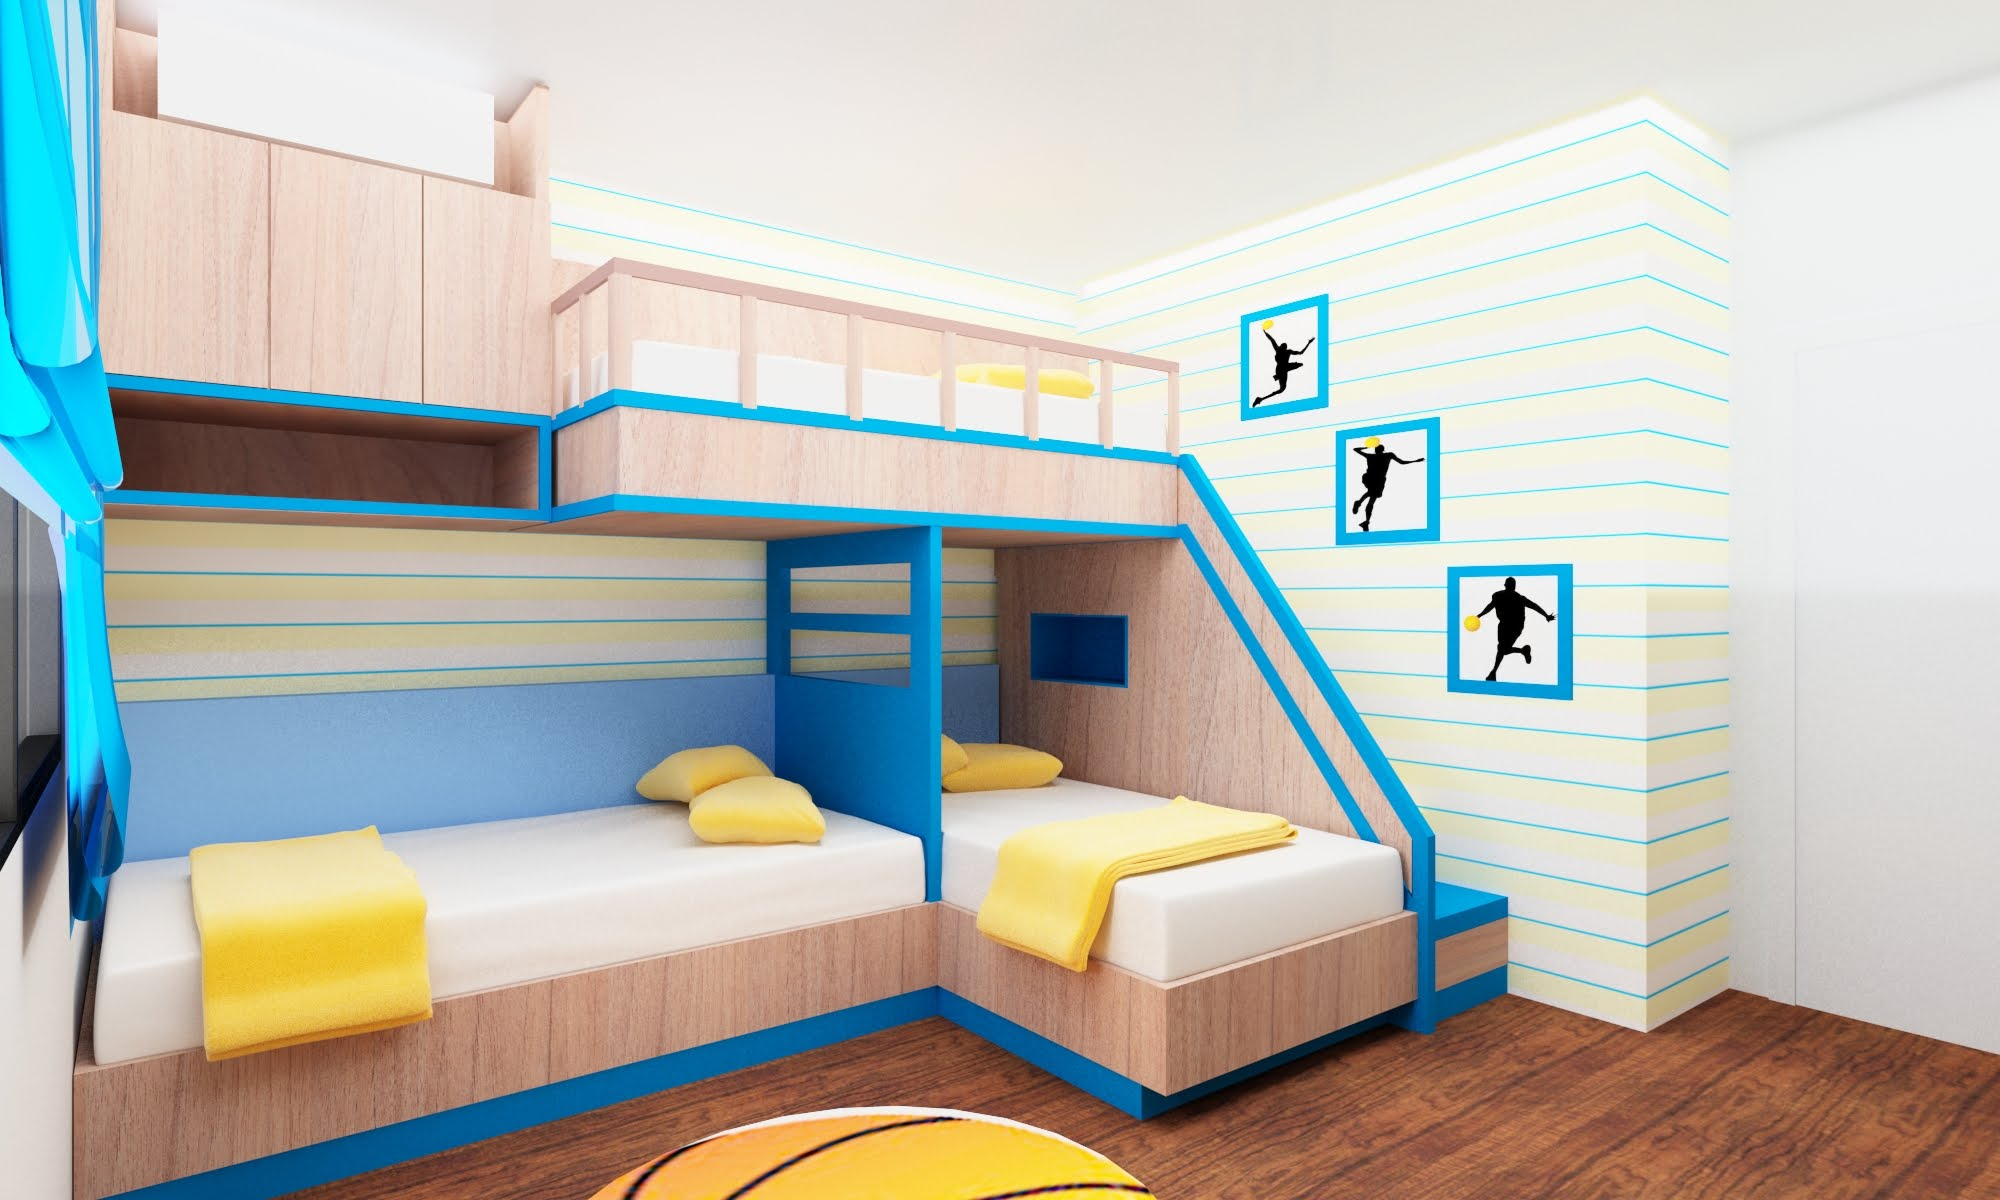 Complete Wonderful Bedroom with Fascinating Toddler Bunk Beds and Blue Curtain above Laminate Oak Flooring